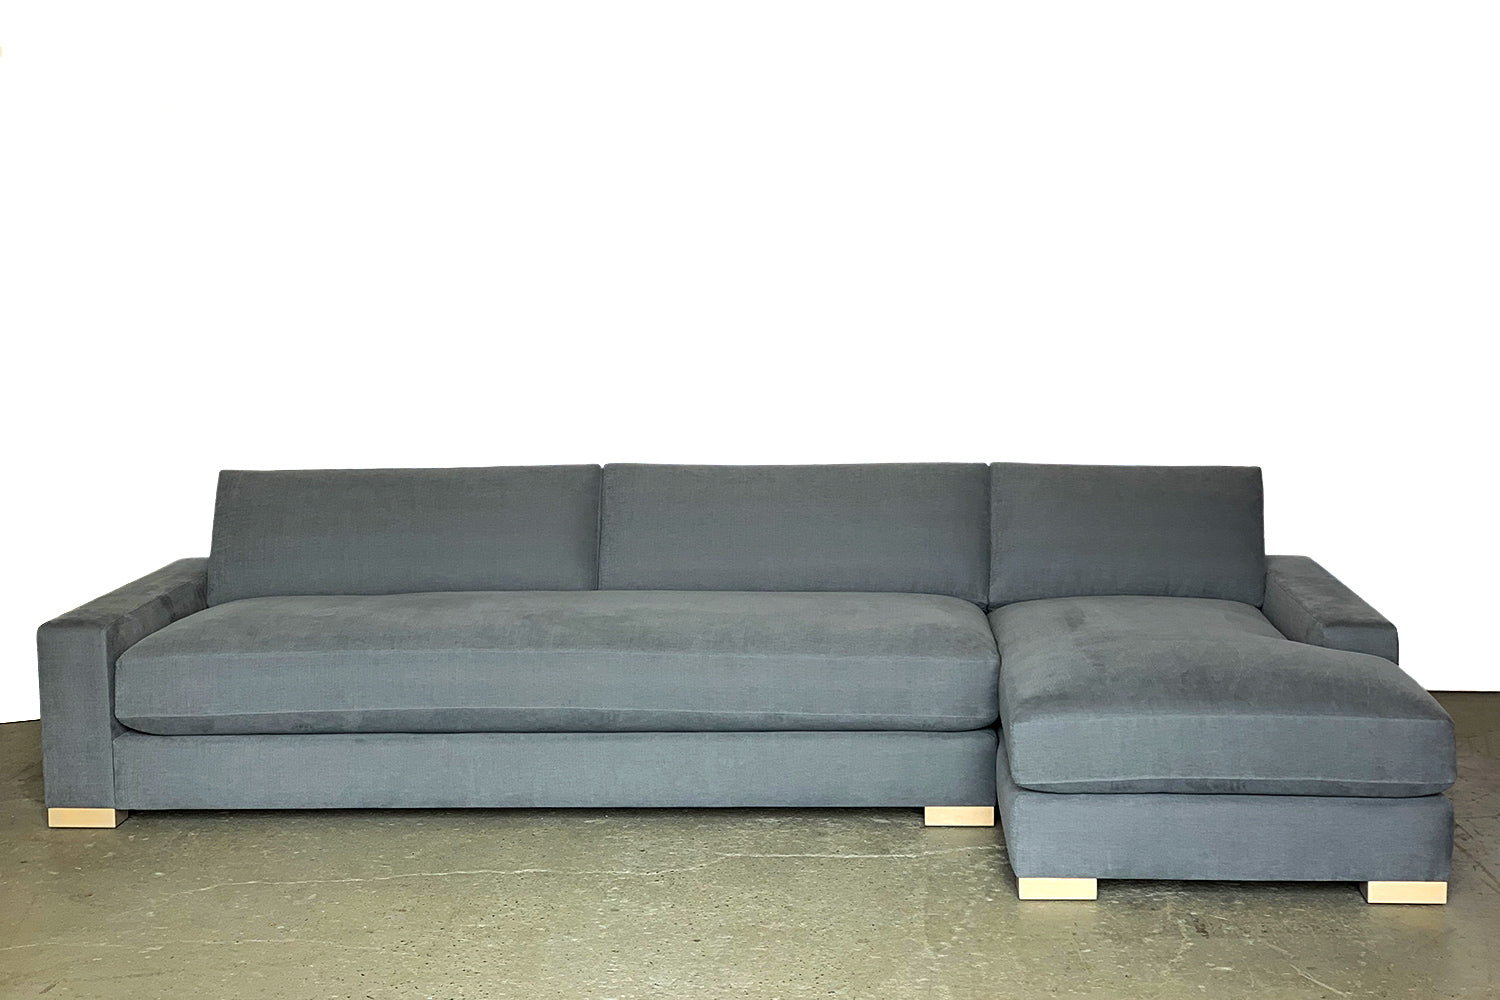 ffabb coasty extra sectional RHF